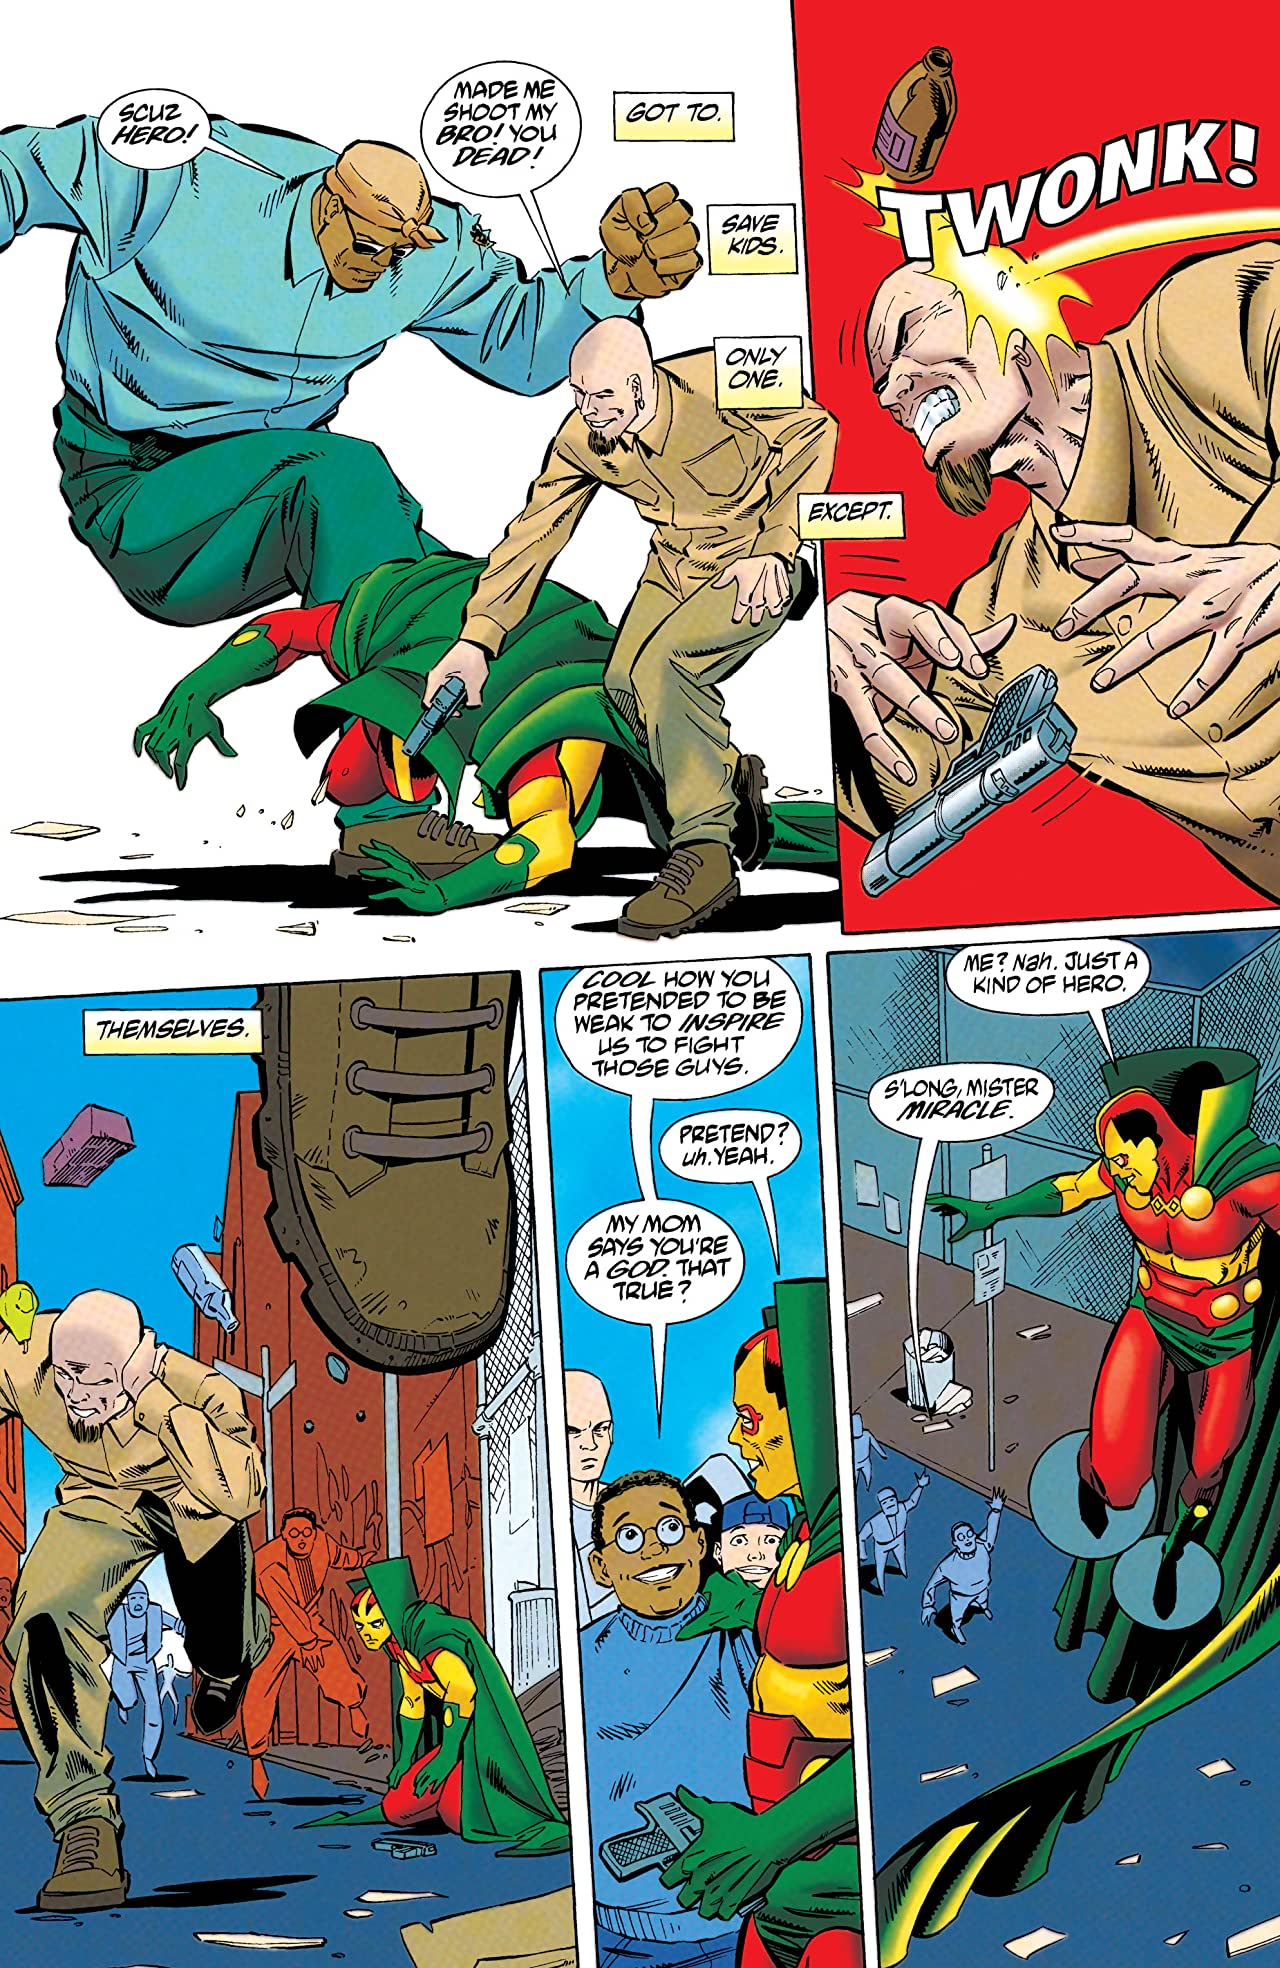 Mister Miracle (1996) #7